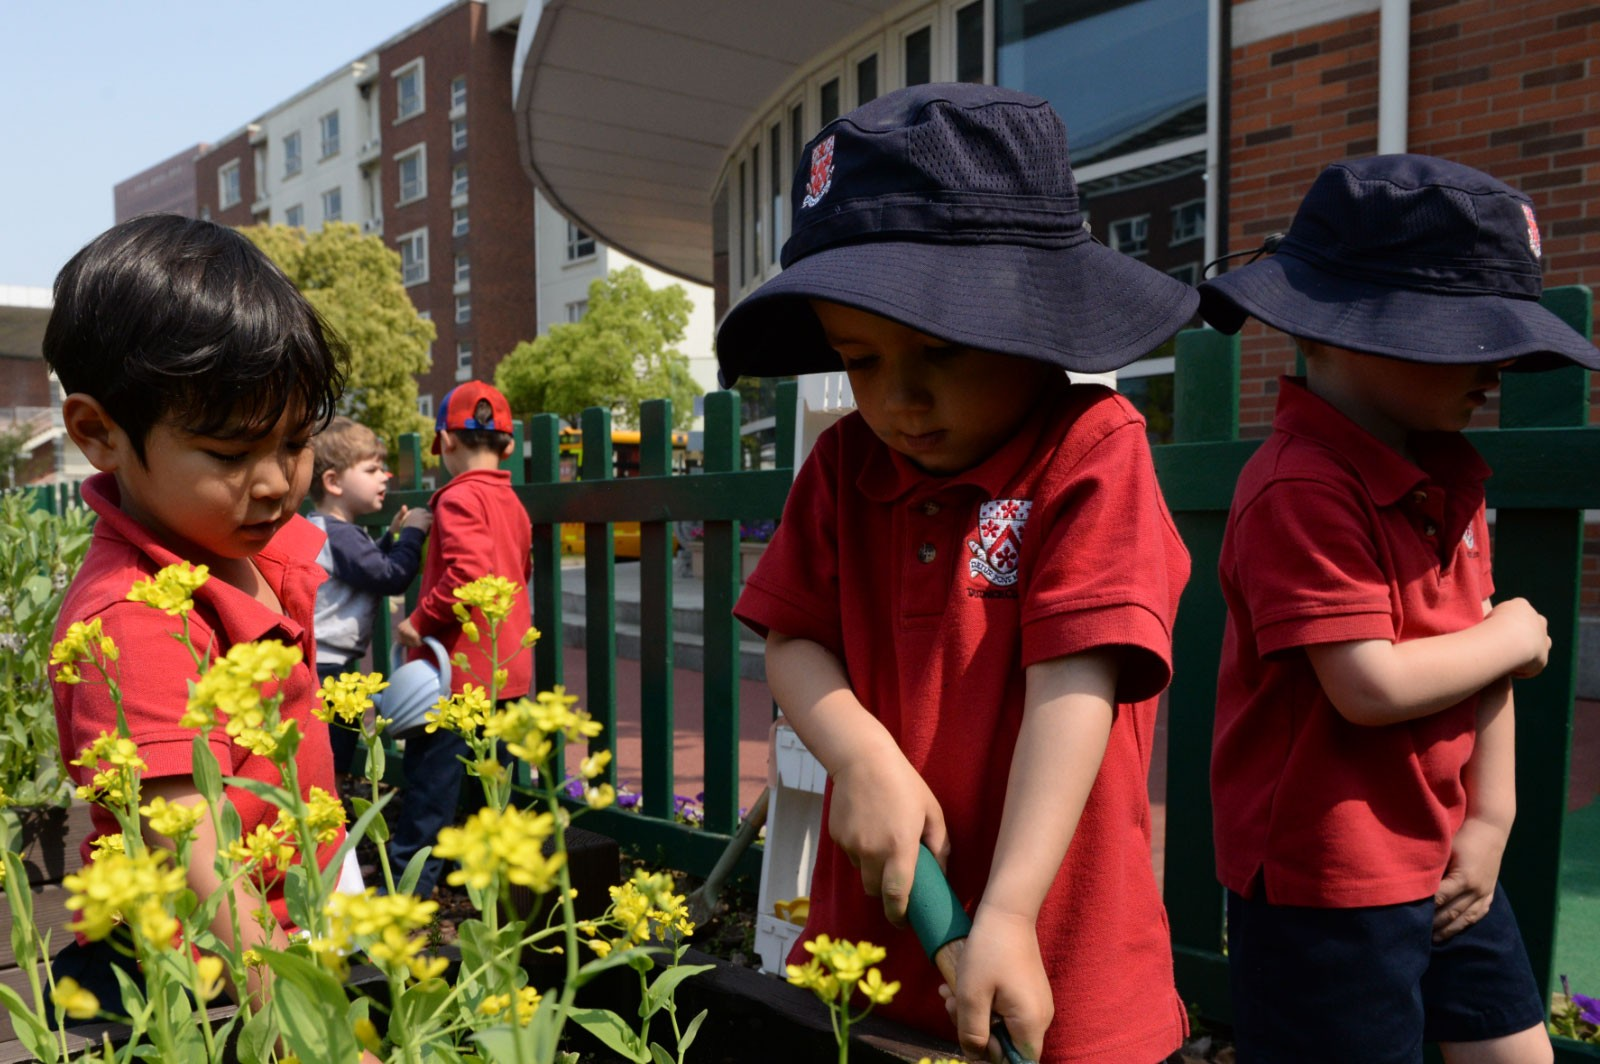 Students in Dulwich's Early Years School taking part activity outdoors